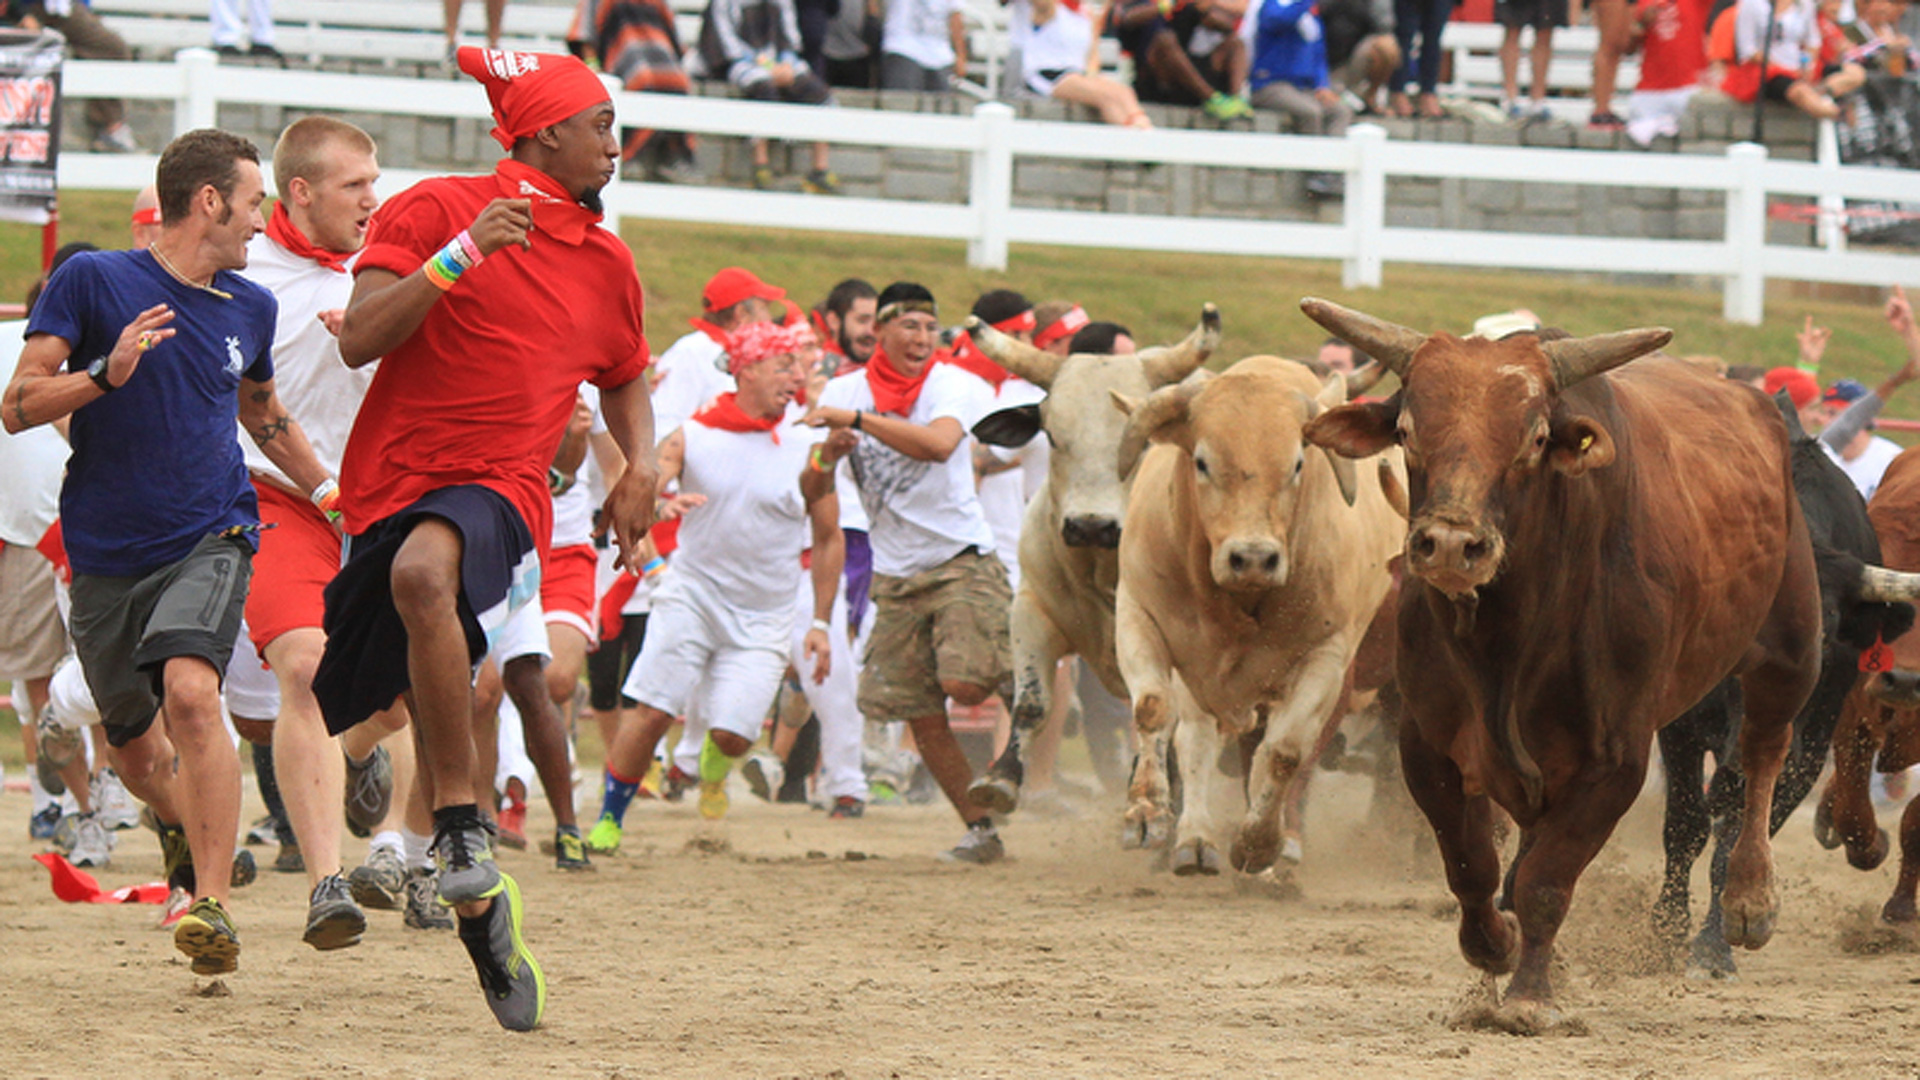 running of the bulls essay The san fermin festivaland the running of the bullsthe san fermin festival in pamplona, spain, has been celebrated for centuries the festival honors san fermin the festival itself is exciting, however, the focal point of the festival is the running o.